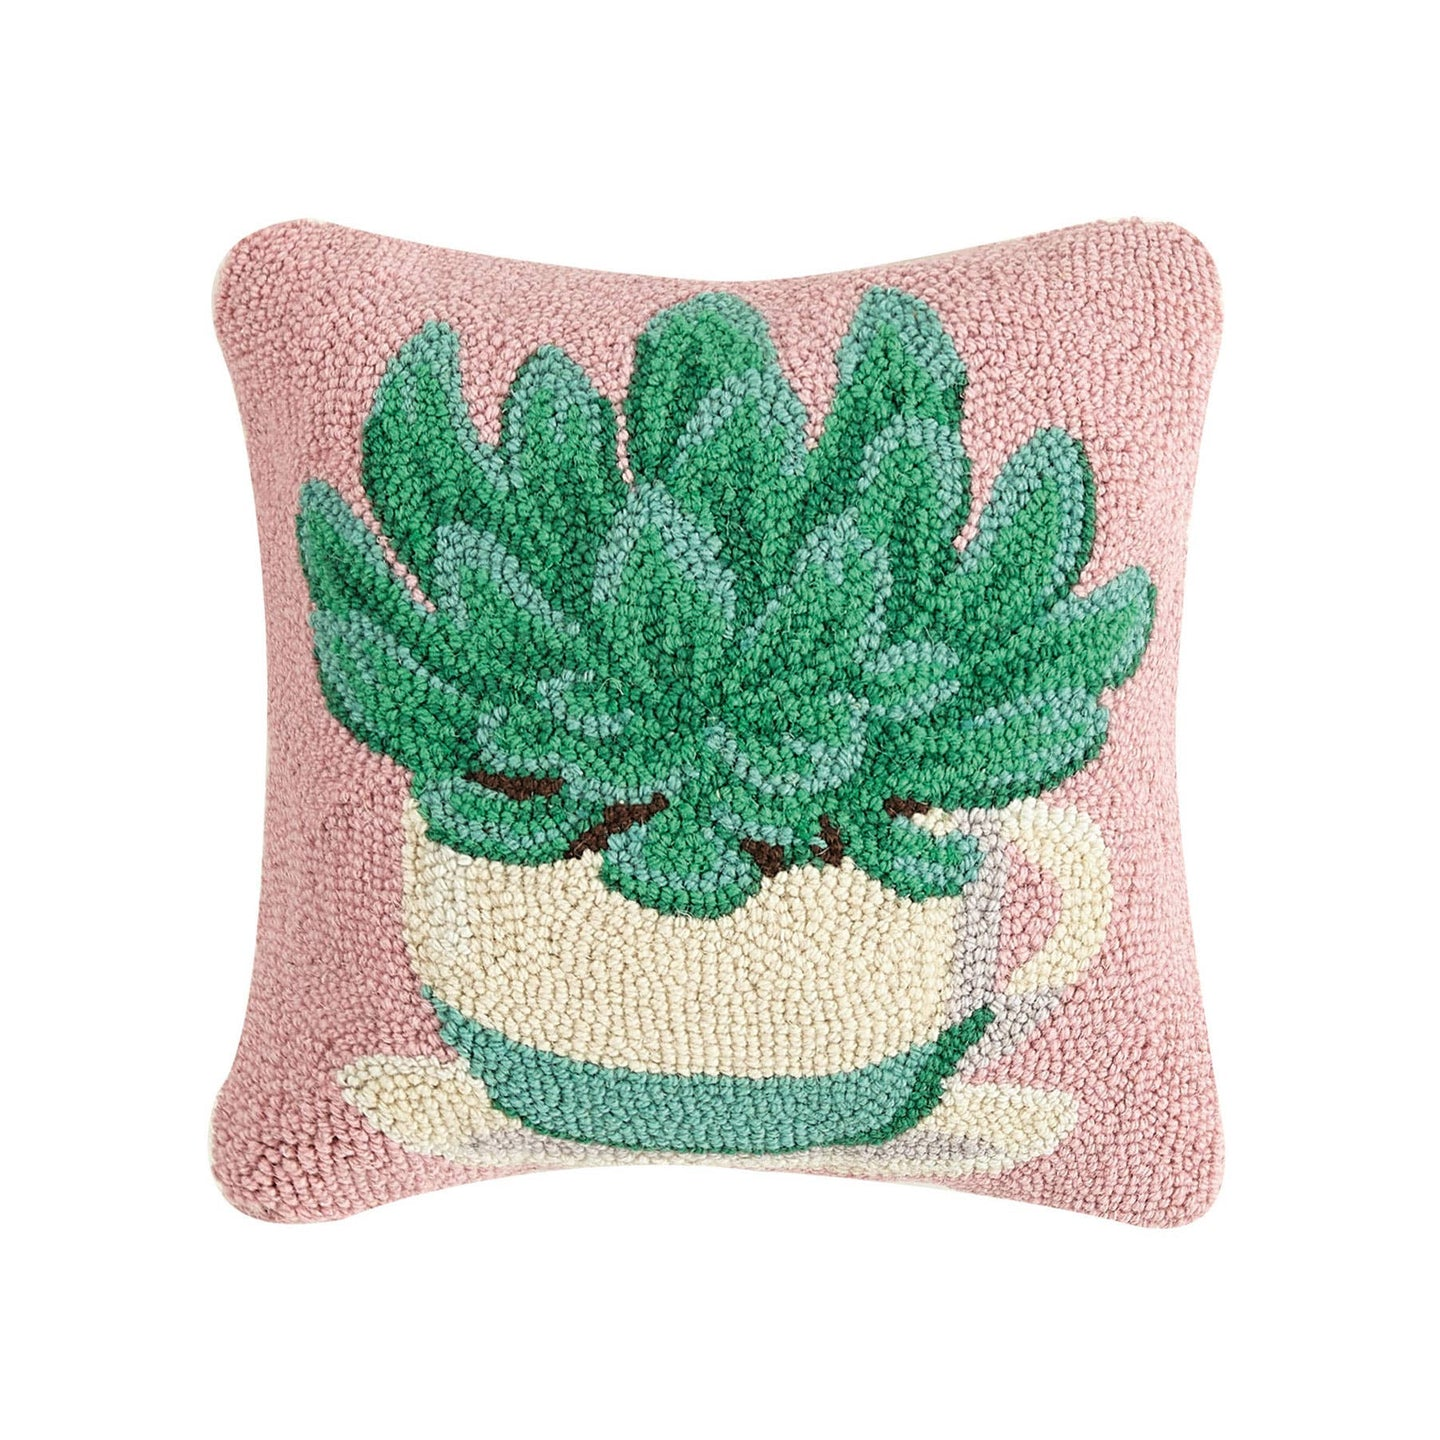 Succulent Teacup Throw Pillow